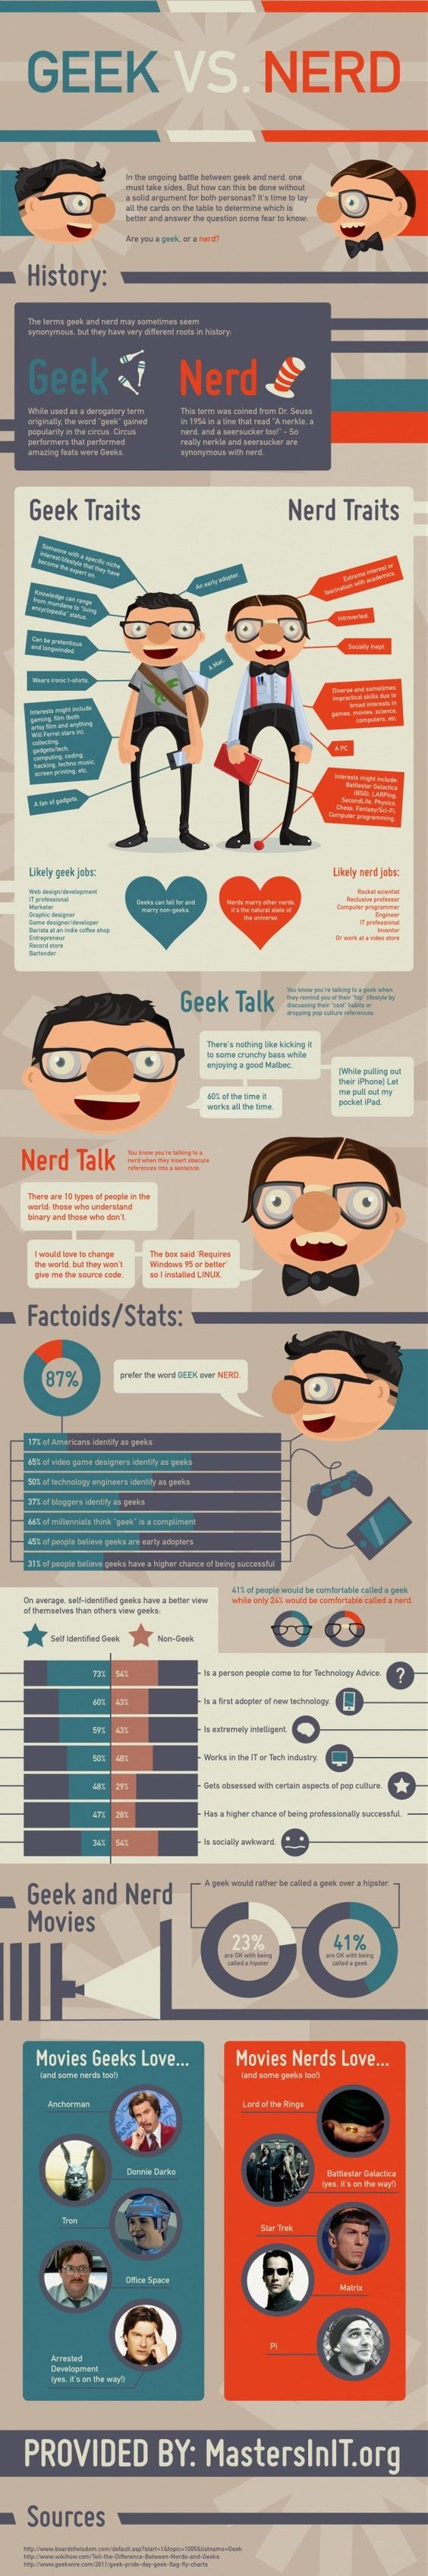 Geek vs Nerd: in case you can't tell them apart